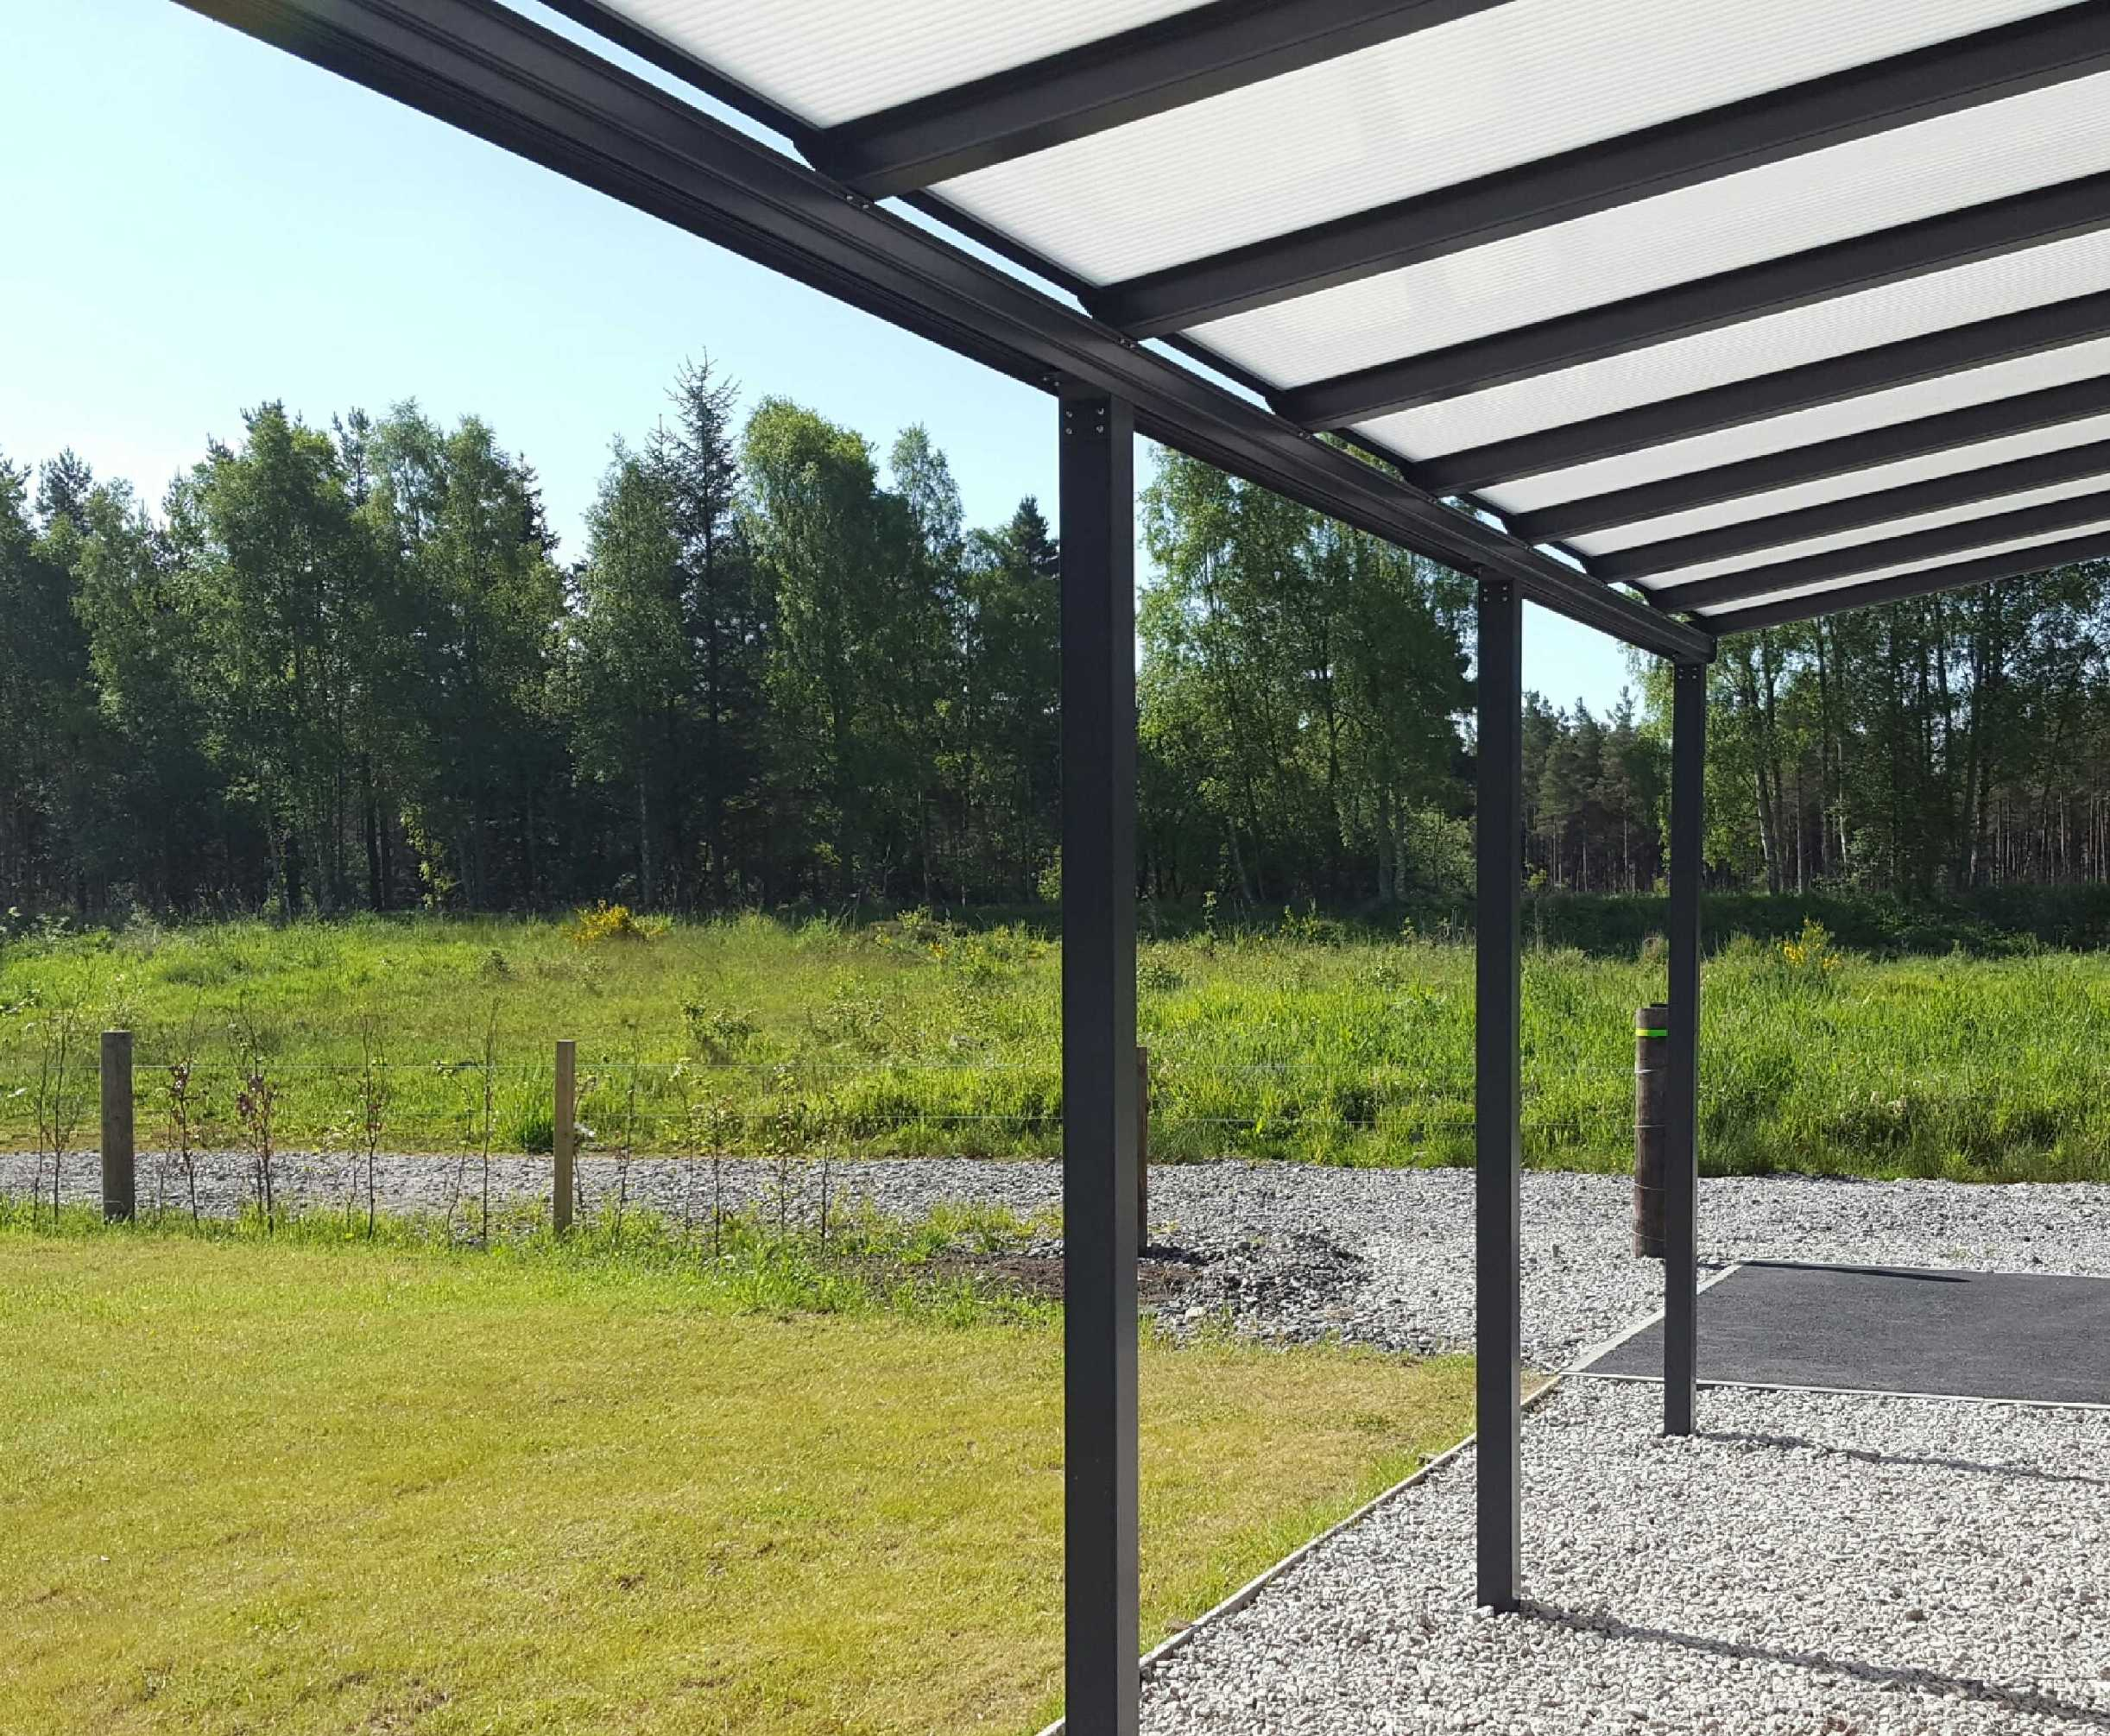 Omega Smart Lean-To Canopy, Anthracite Grey, UNGLAZED for 6mm Glazing - 9.8m (W) x 3.0m (P), (5) Supporting Posts